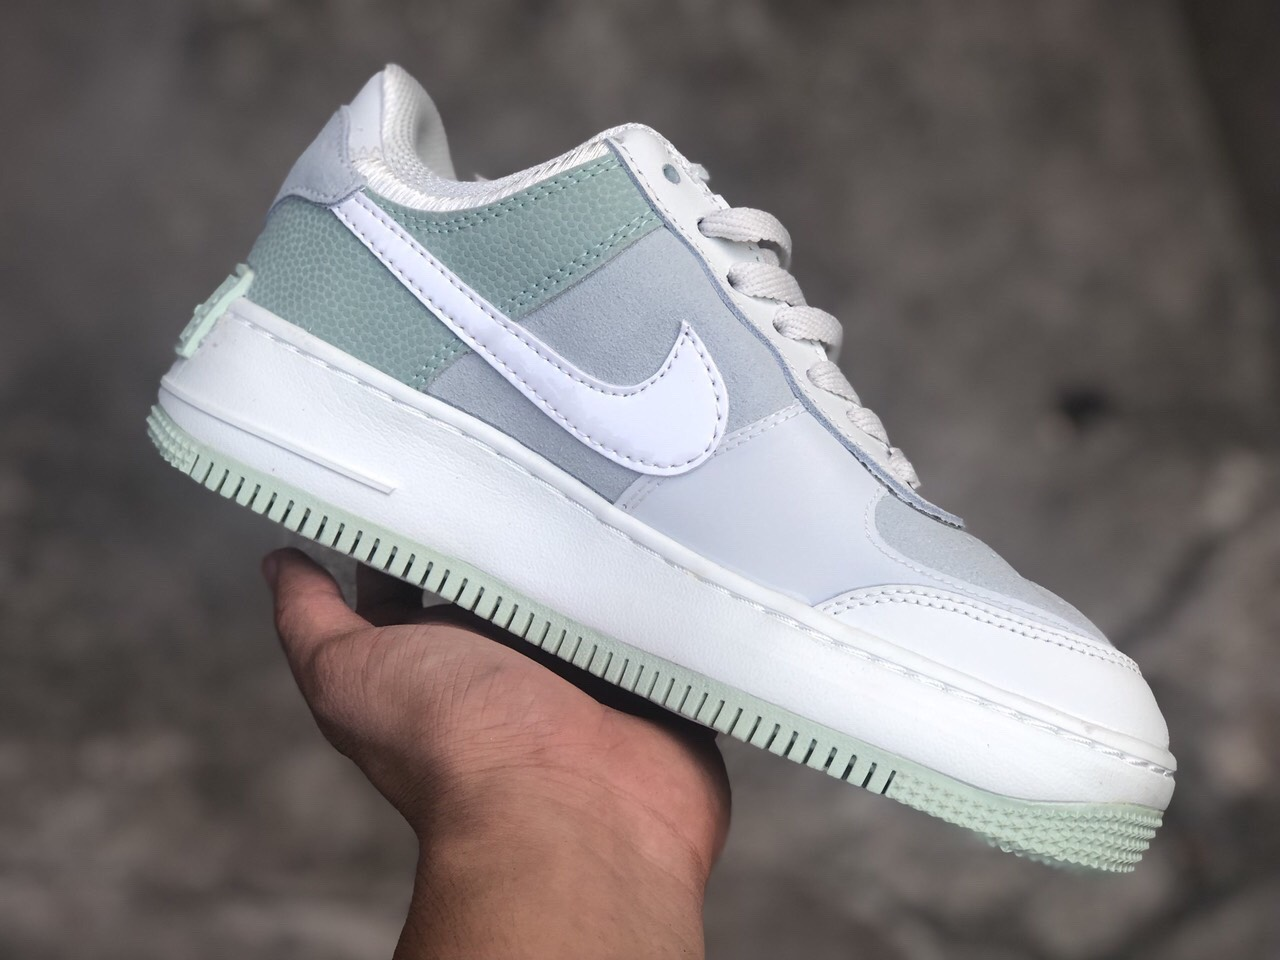 Giay Nike Af1 Shadow Spruce Aura Green Xanh Ngọc Kl Store Sneakers More Giày sneaker, giày thể thao nike nữ. nike af1 shadow spruce aura green xanh